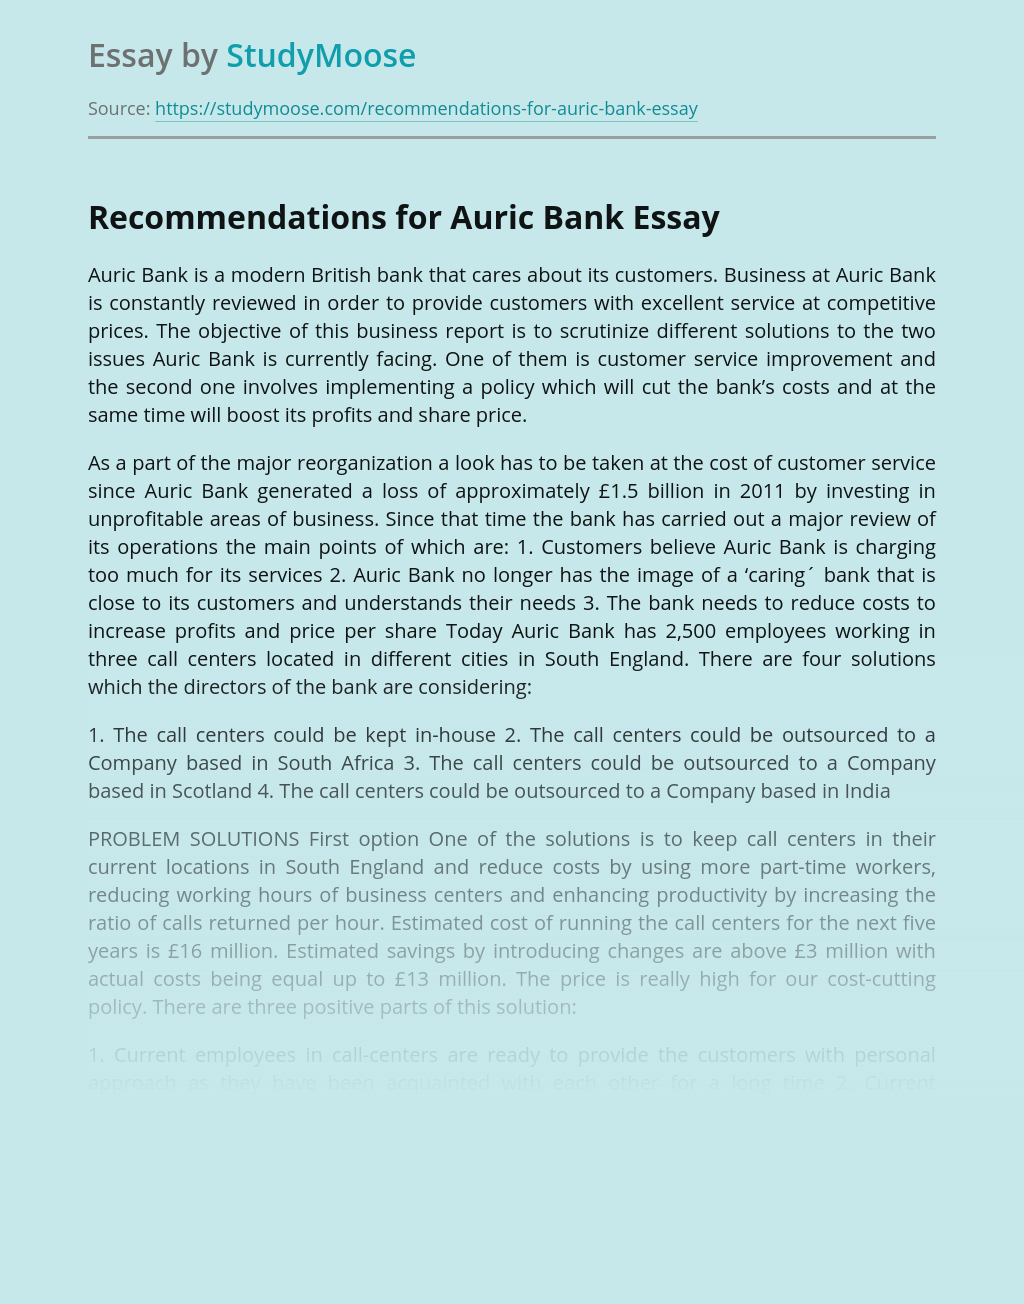 Recommendations for Auric Bank